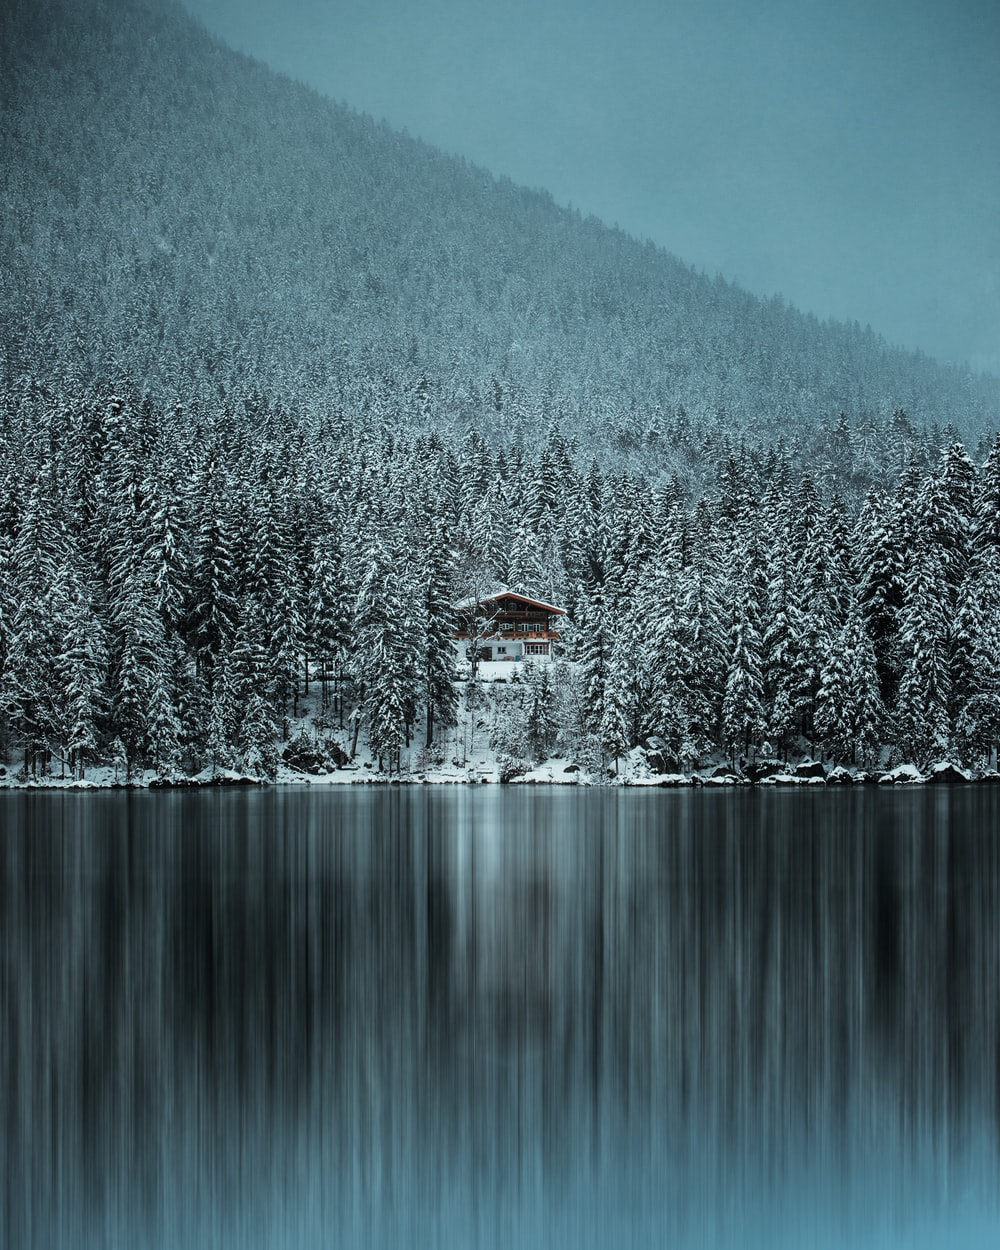 brown house on snow covered ground near body of water during daytime